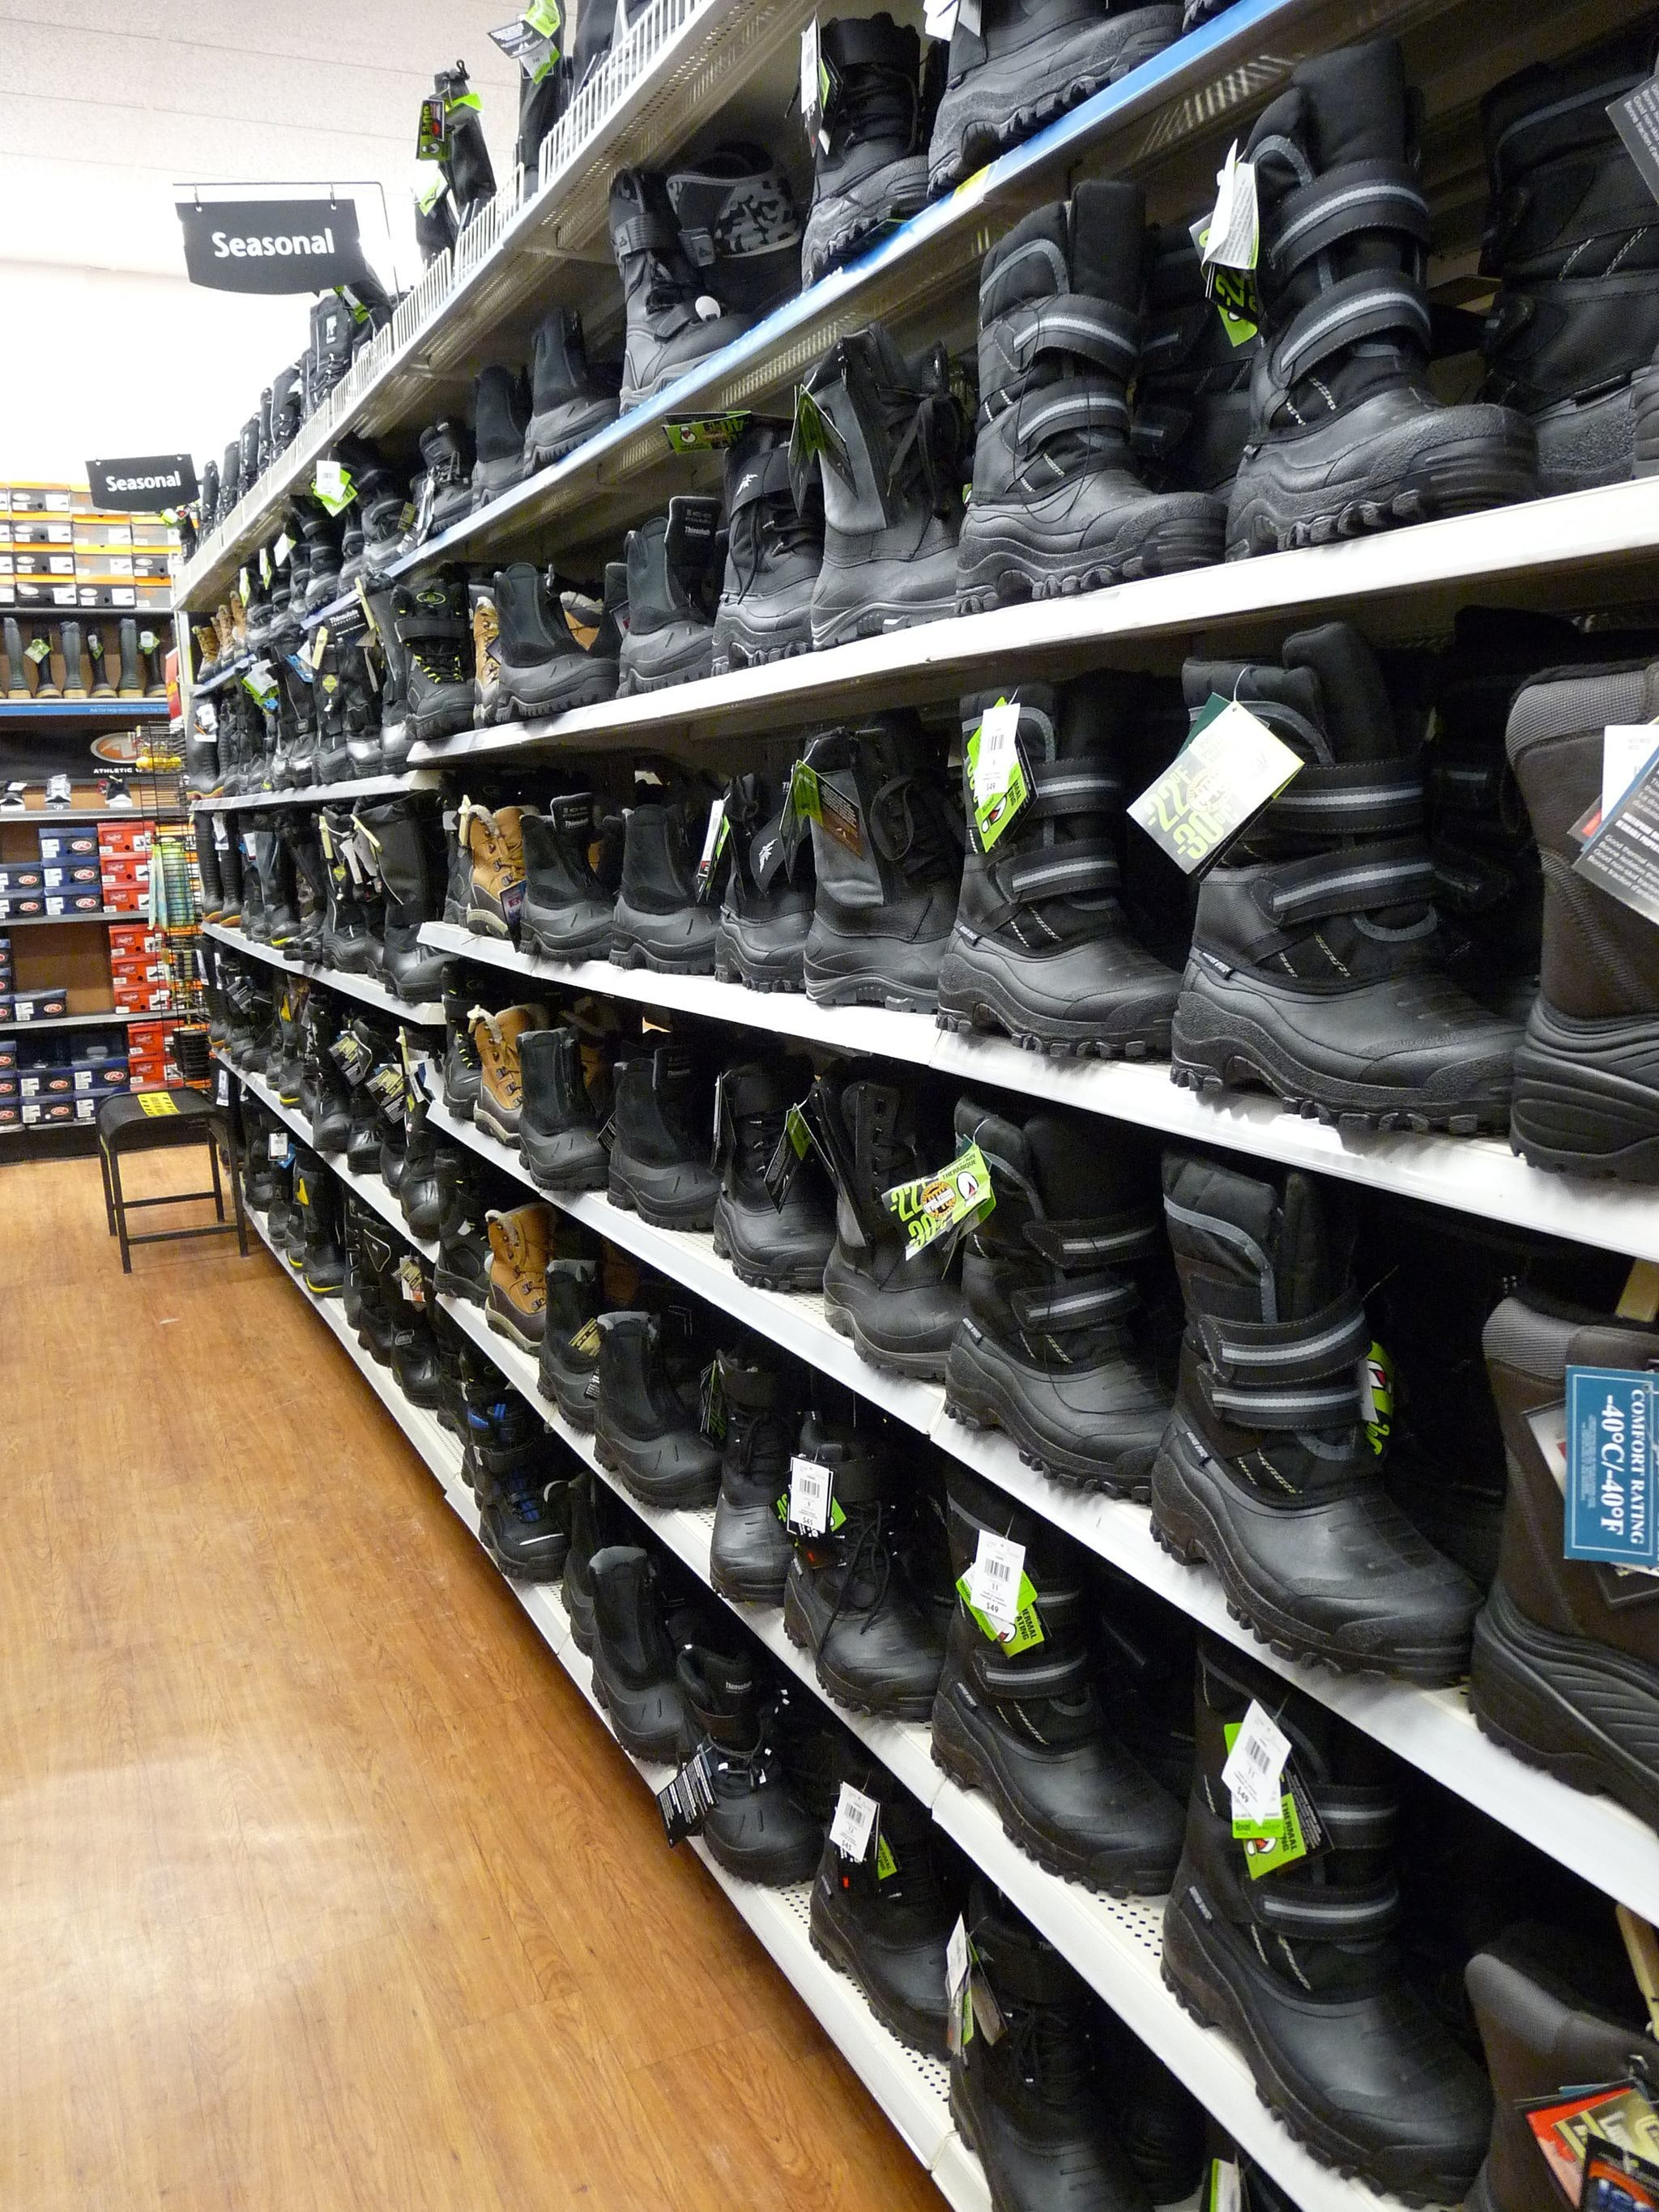 Heavy duty winter boots for sale at the Walmart, Thompson, Manitoba